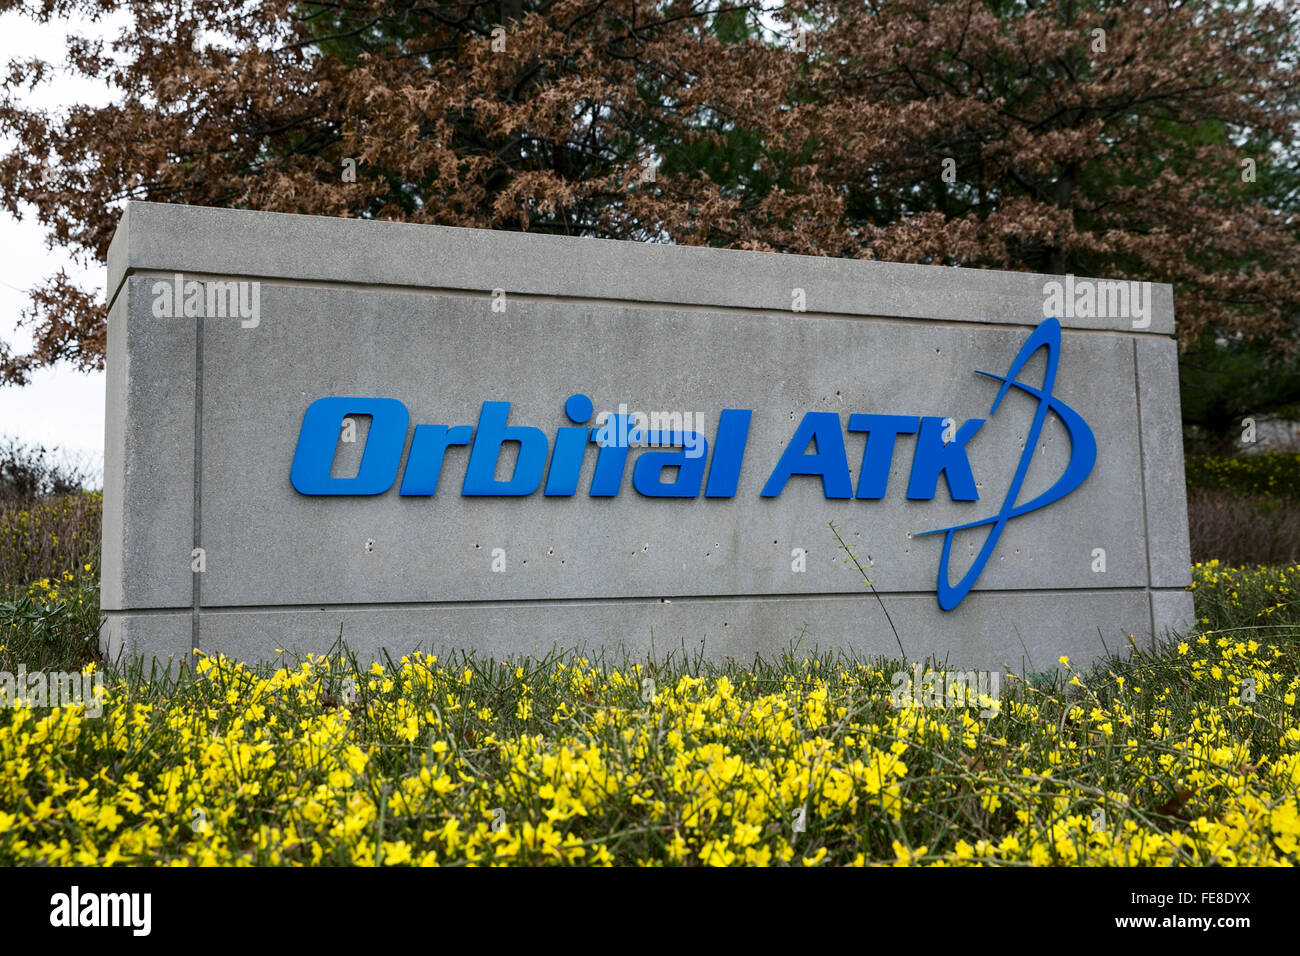 A logo sign outside of the headquarters of Orbital ATK Inc., in Dulles, Virginia on January 1, 2016. - Stock Image